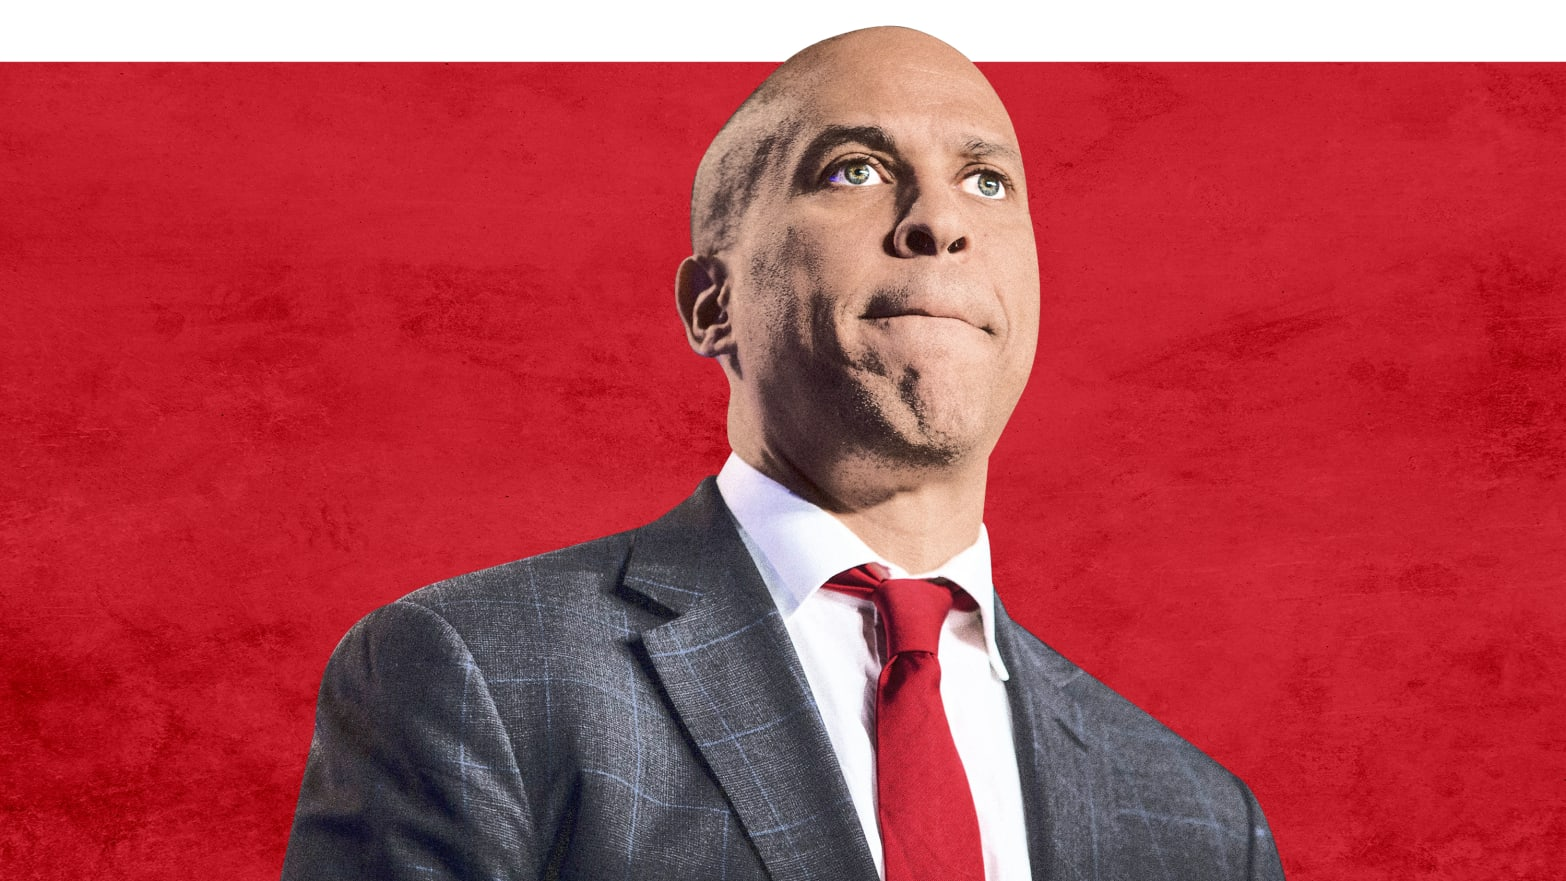 Aggressive Income Ideas 2020 Cory 'Radical Love' Booker Gets Aggressive With His 2020